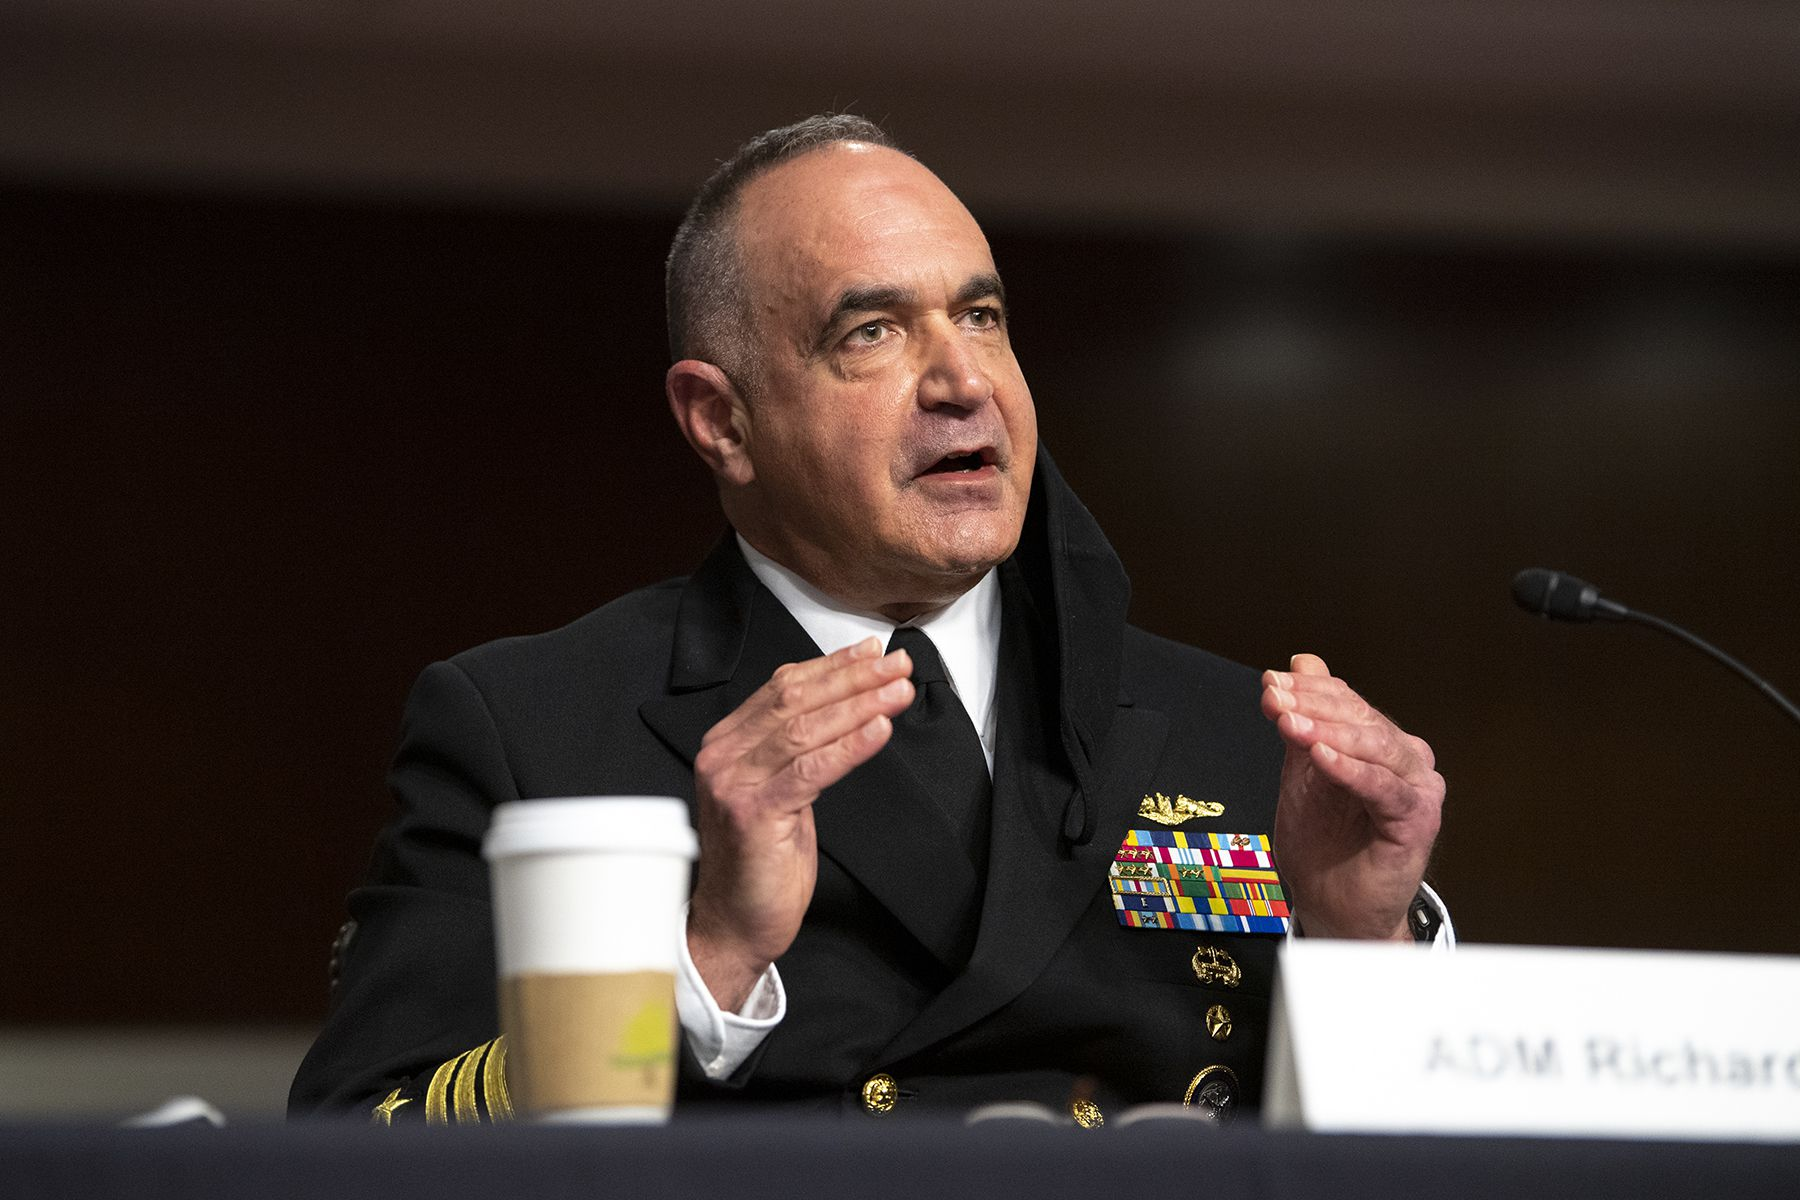 STRATCOM boss clarifies comments on 'zero' extremism in his organization